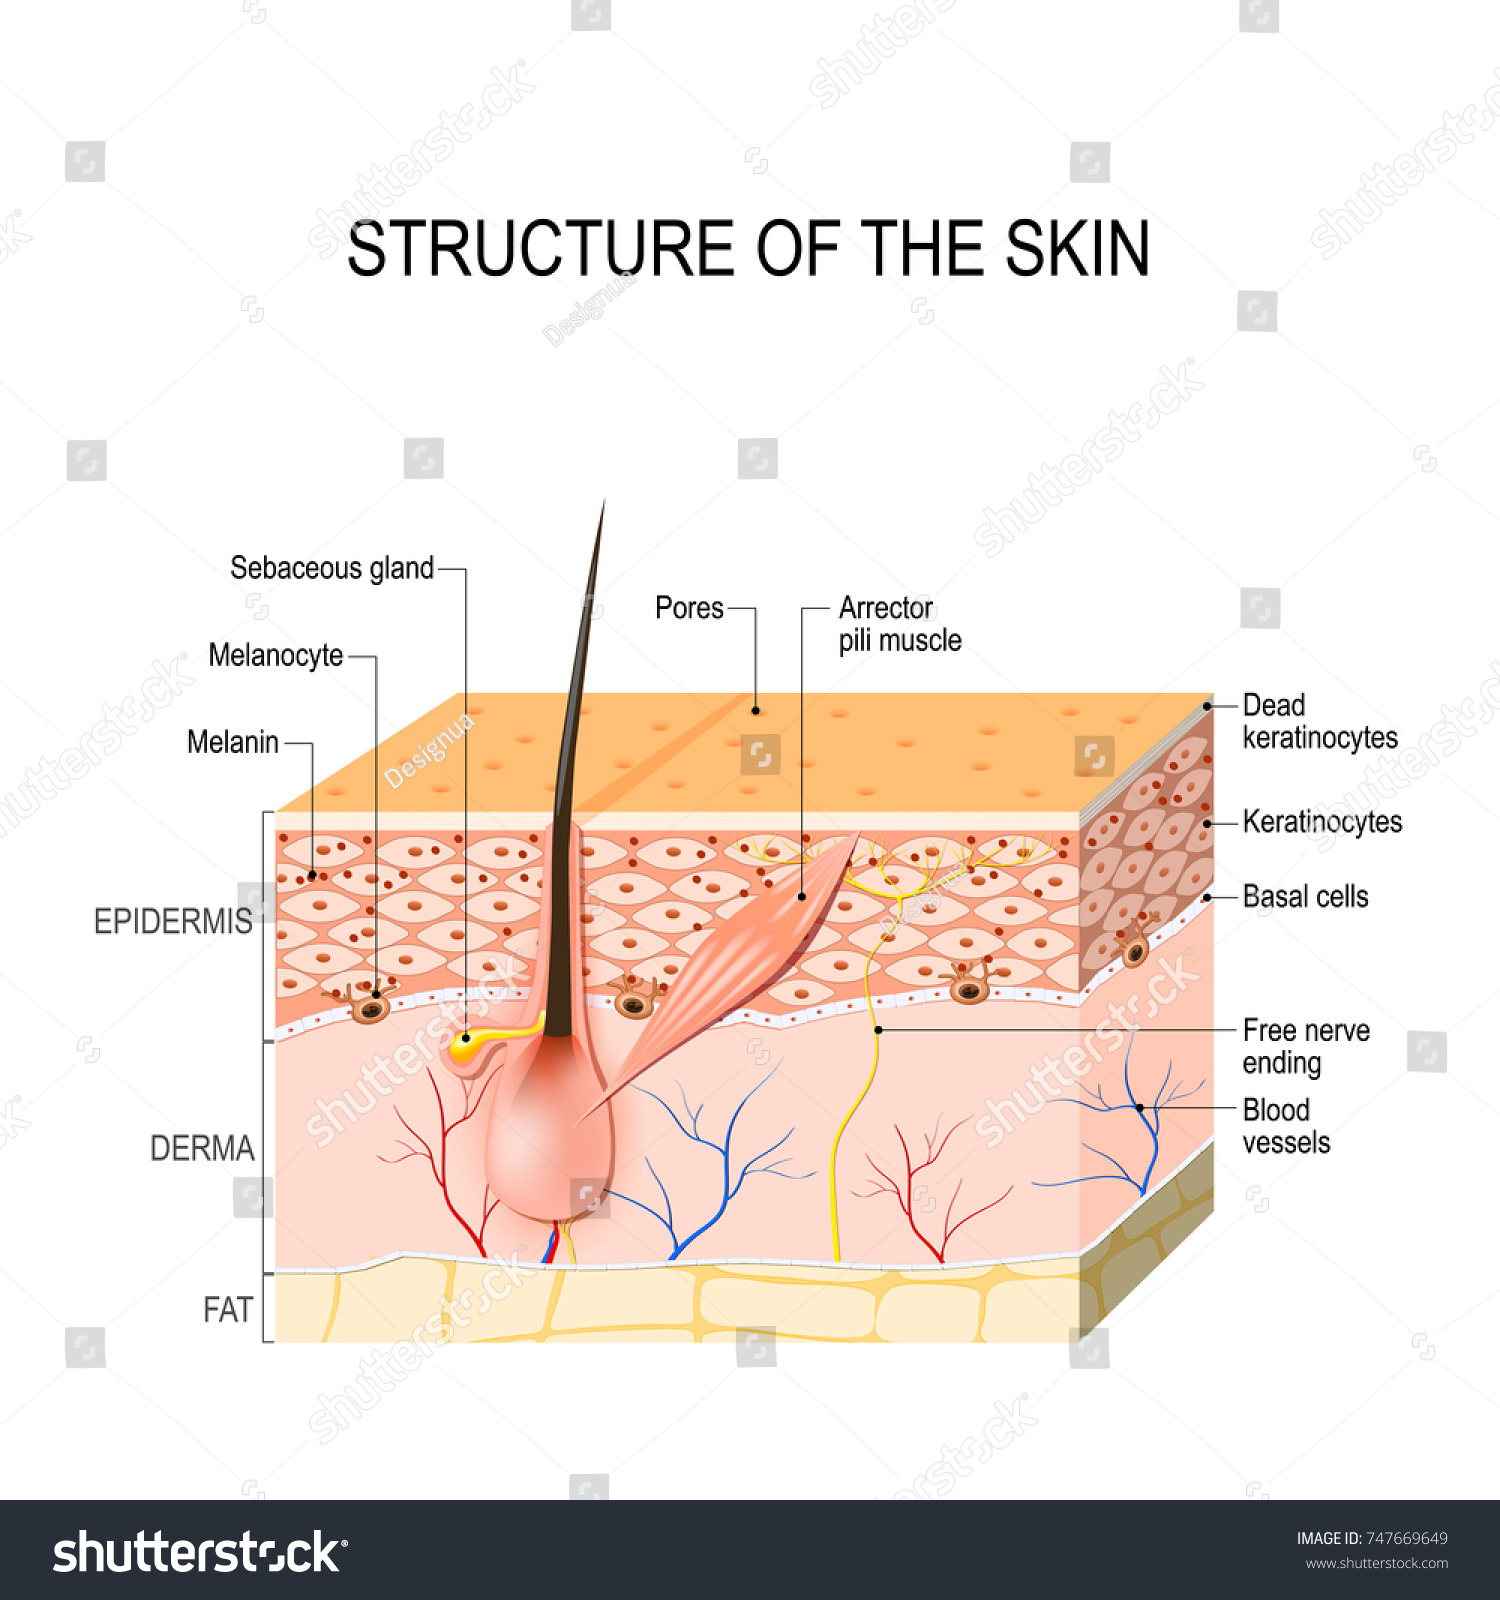 Healthy Human Skin Hair Follicle Cell Stock Vector (Royalty Free ...